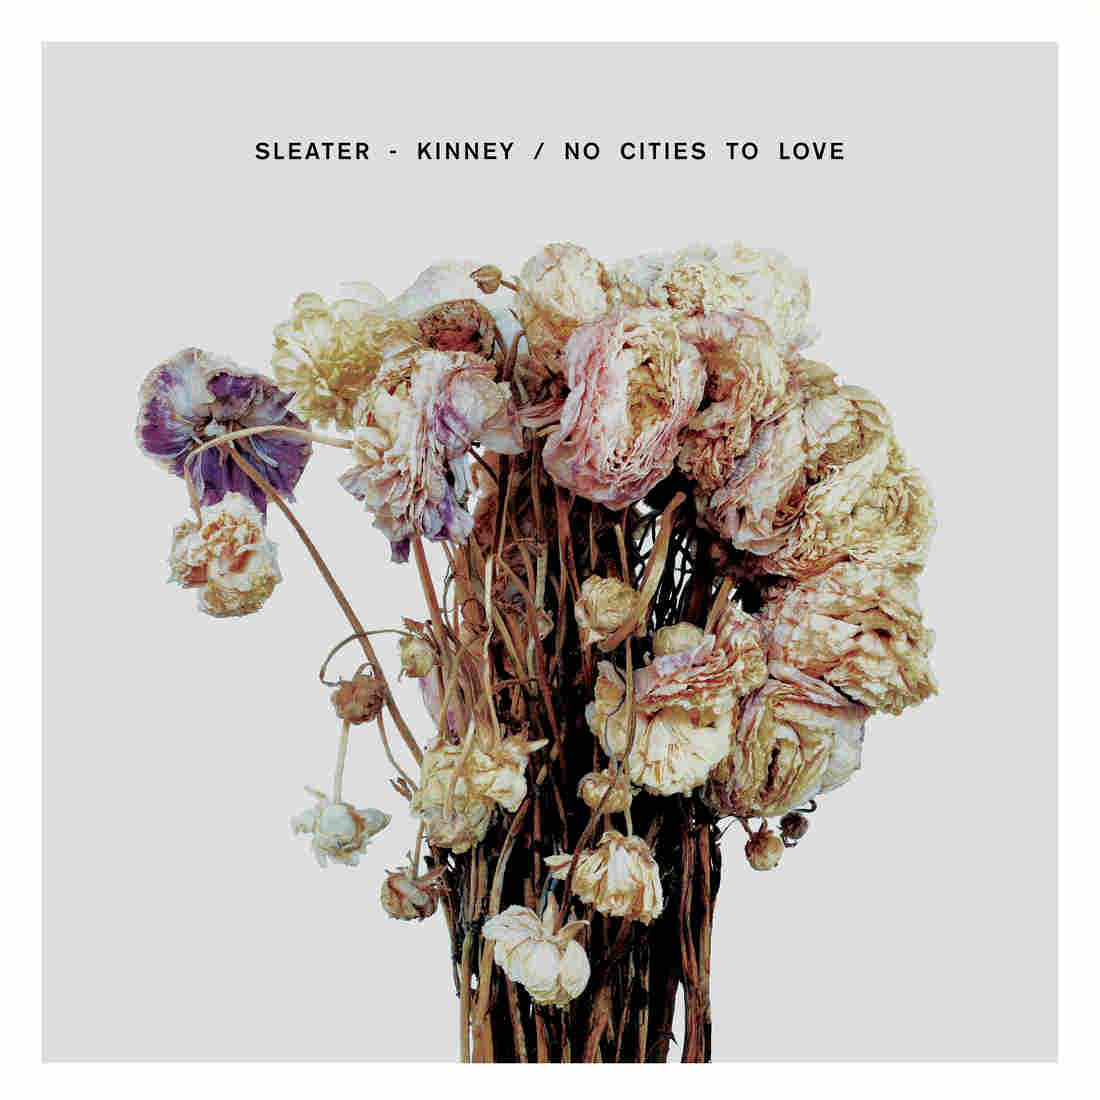 Let's Shake it Like Never Before: Sleater-Kinney Return with the Powerful No Cities to Love